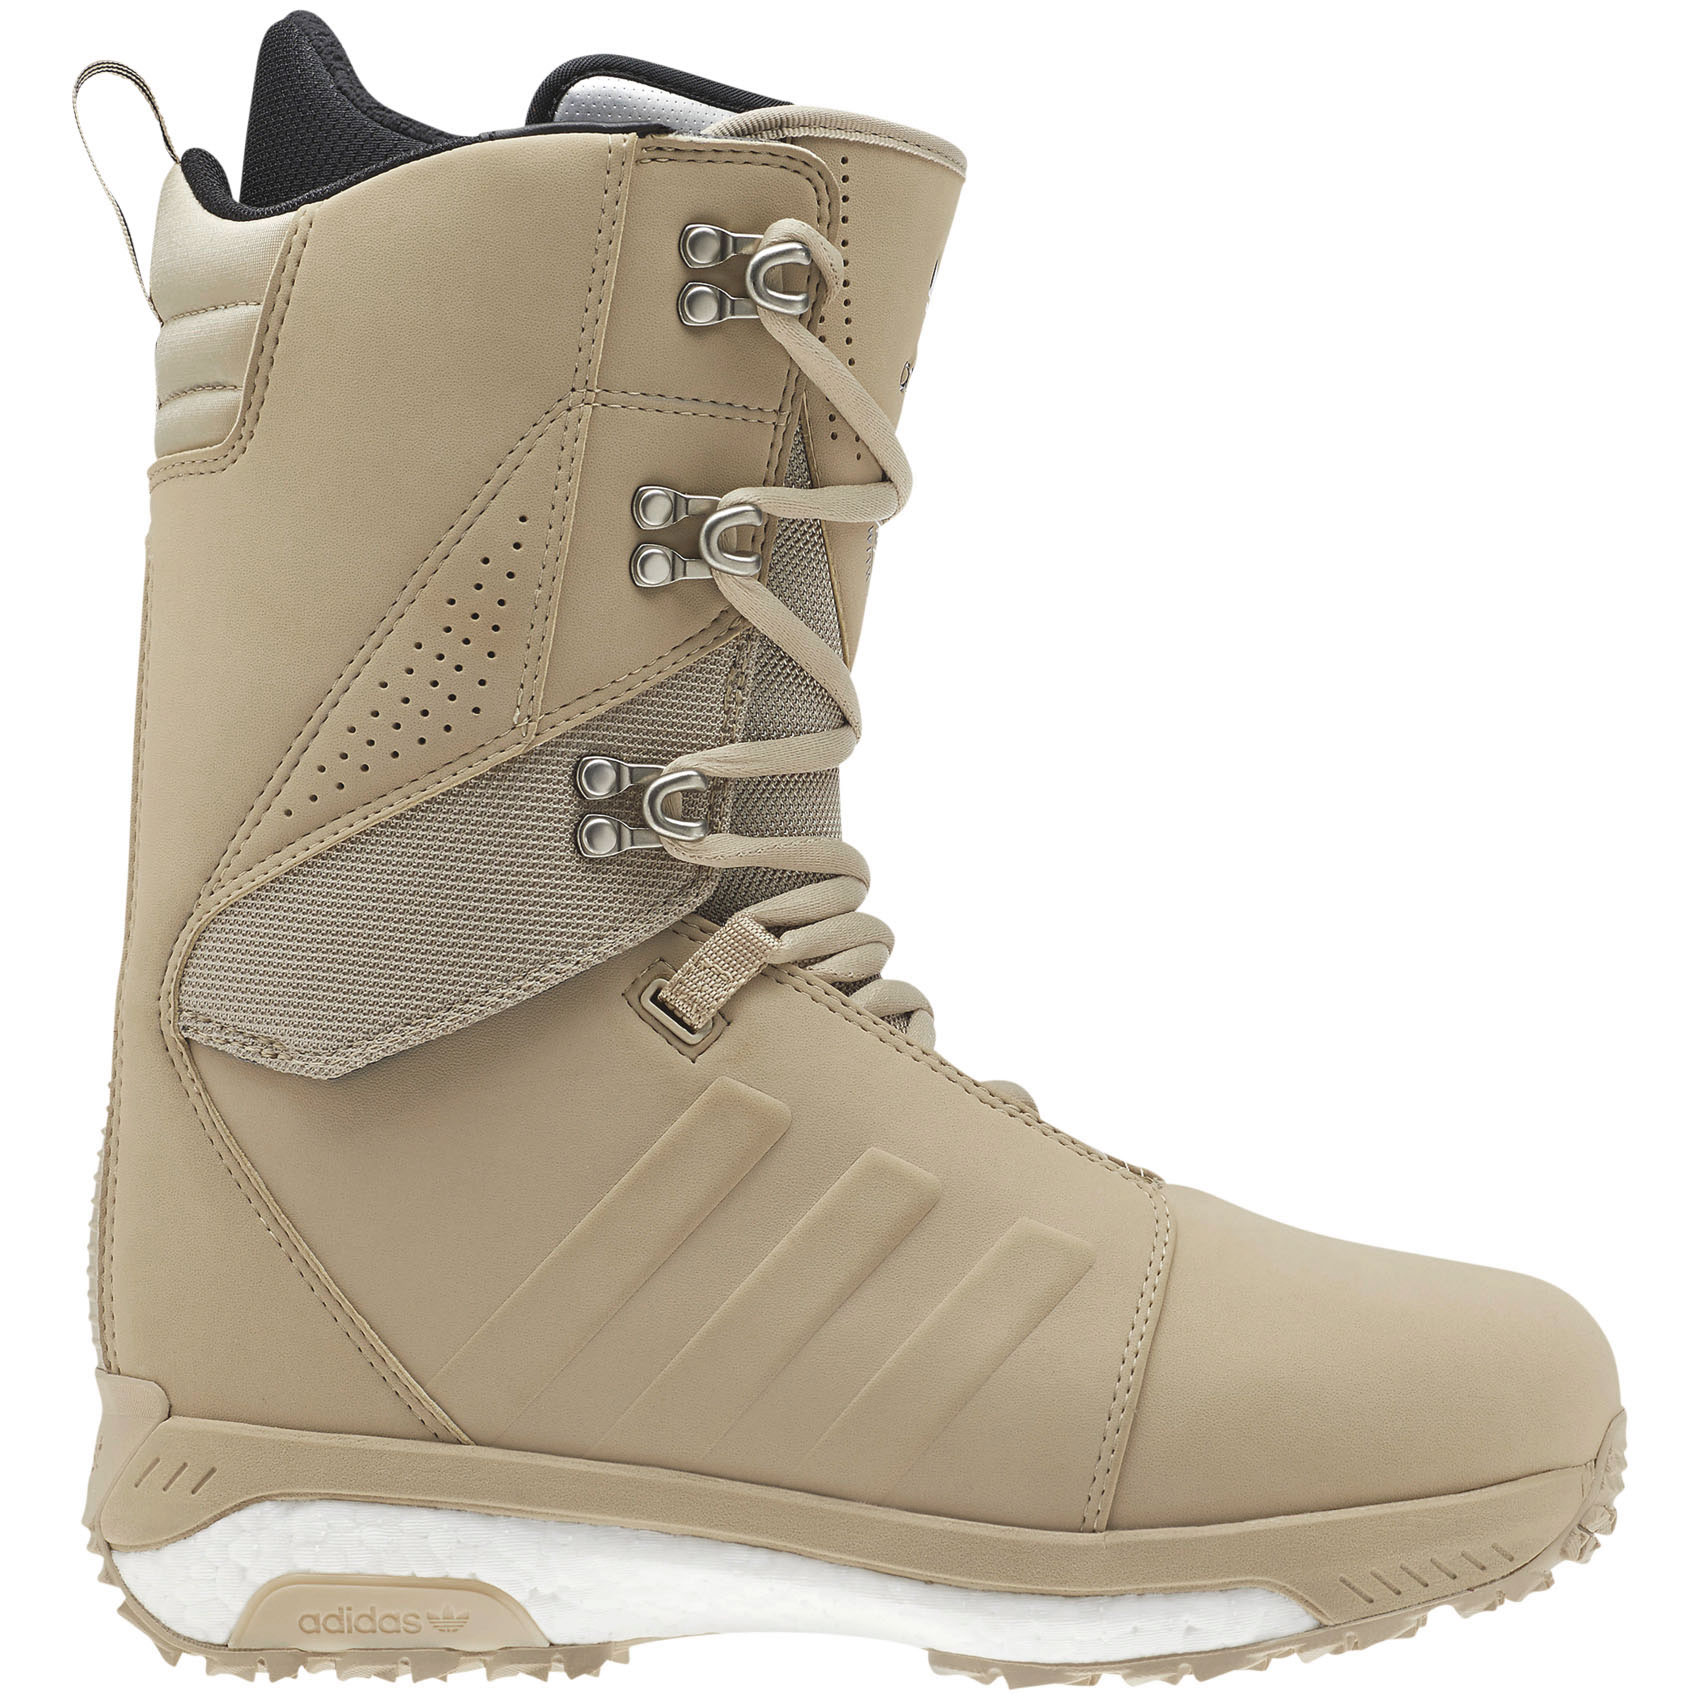 0140e9ada710 Adidas Tactical Adv Snowboard Boot 2019 Raw Gold White UK 8. 29%